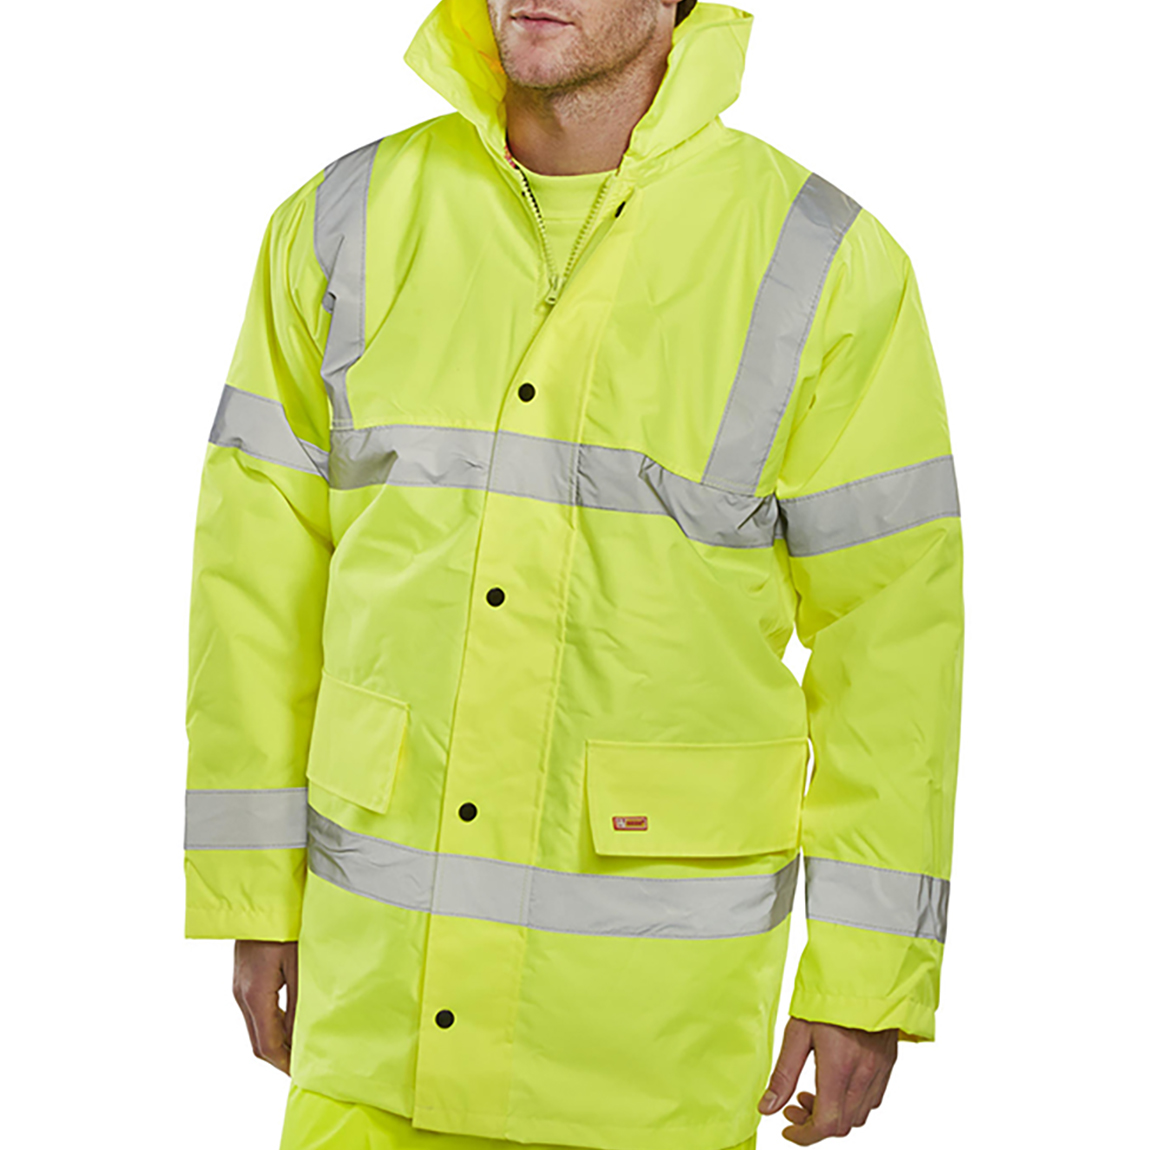 BSeen High Visibility Constructor Jacket Large Saturn Yellow Ref CTJENGSYL Approx 3 Day Leadtime